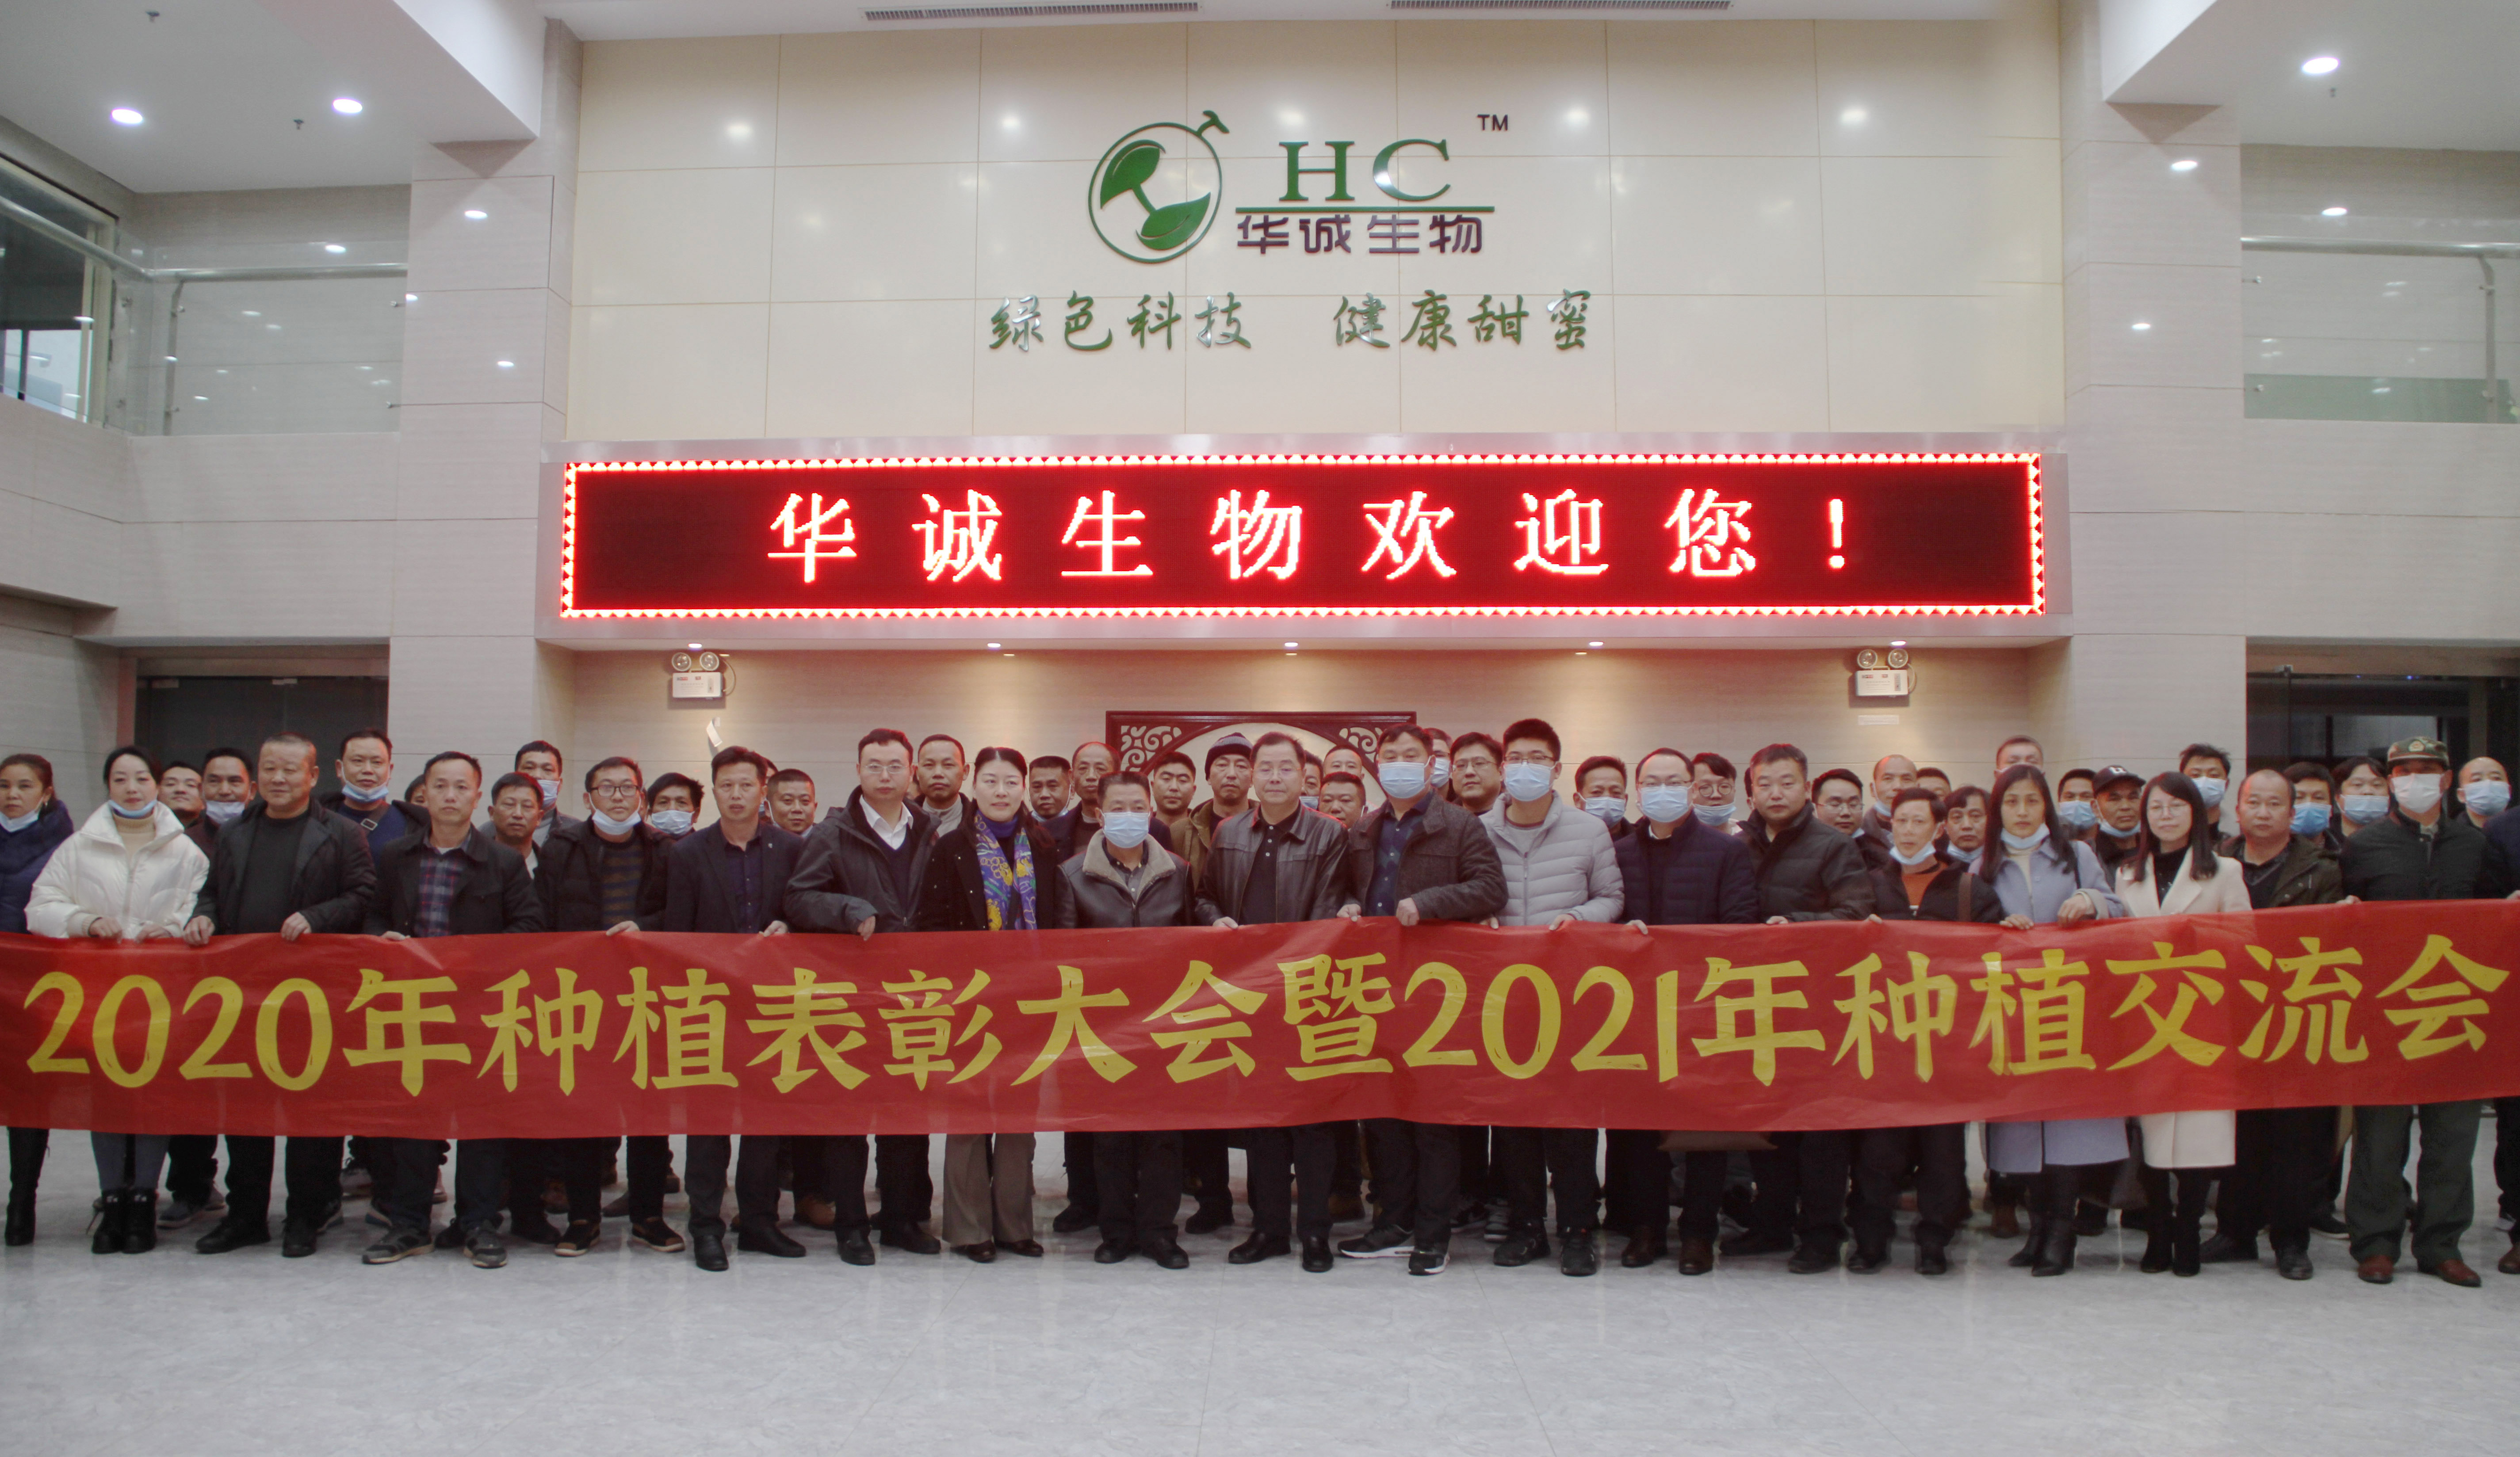 2020 Commendation Conference and 2021 Annual Meeting of Luo Han Guo Planting